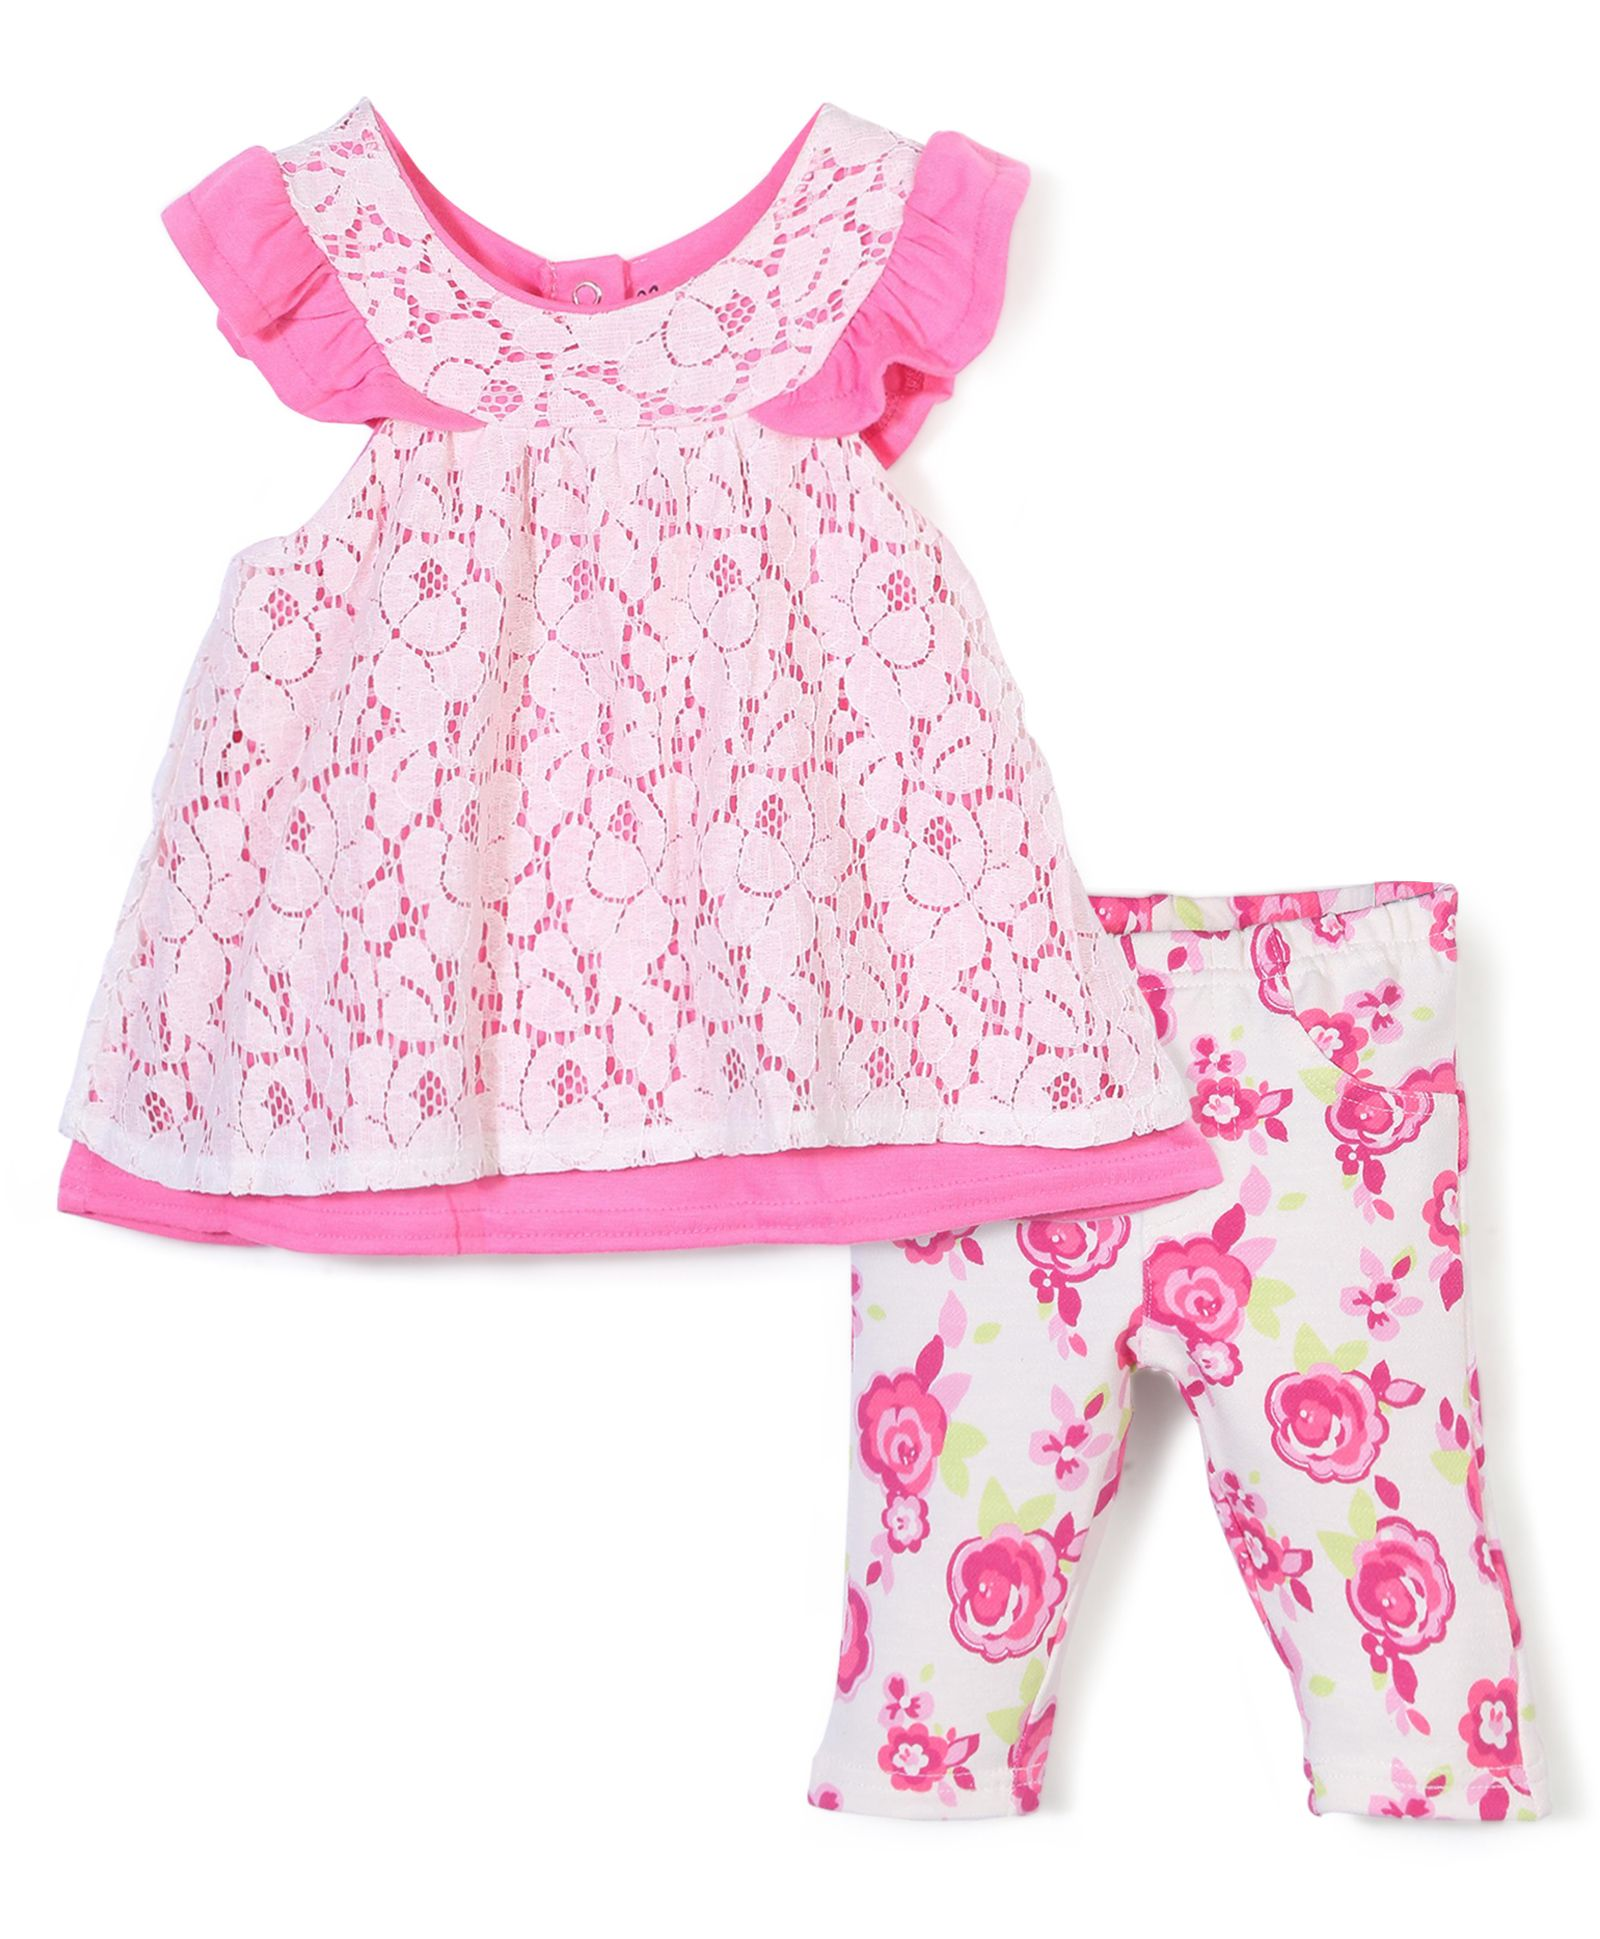 Upto 40% Off On Kid's Wear By Firstcry | Nannette Floral Print Dress & Legging Set - White & Pink @ Rs.1,270.38